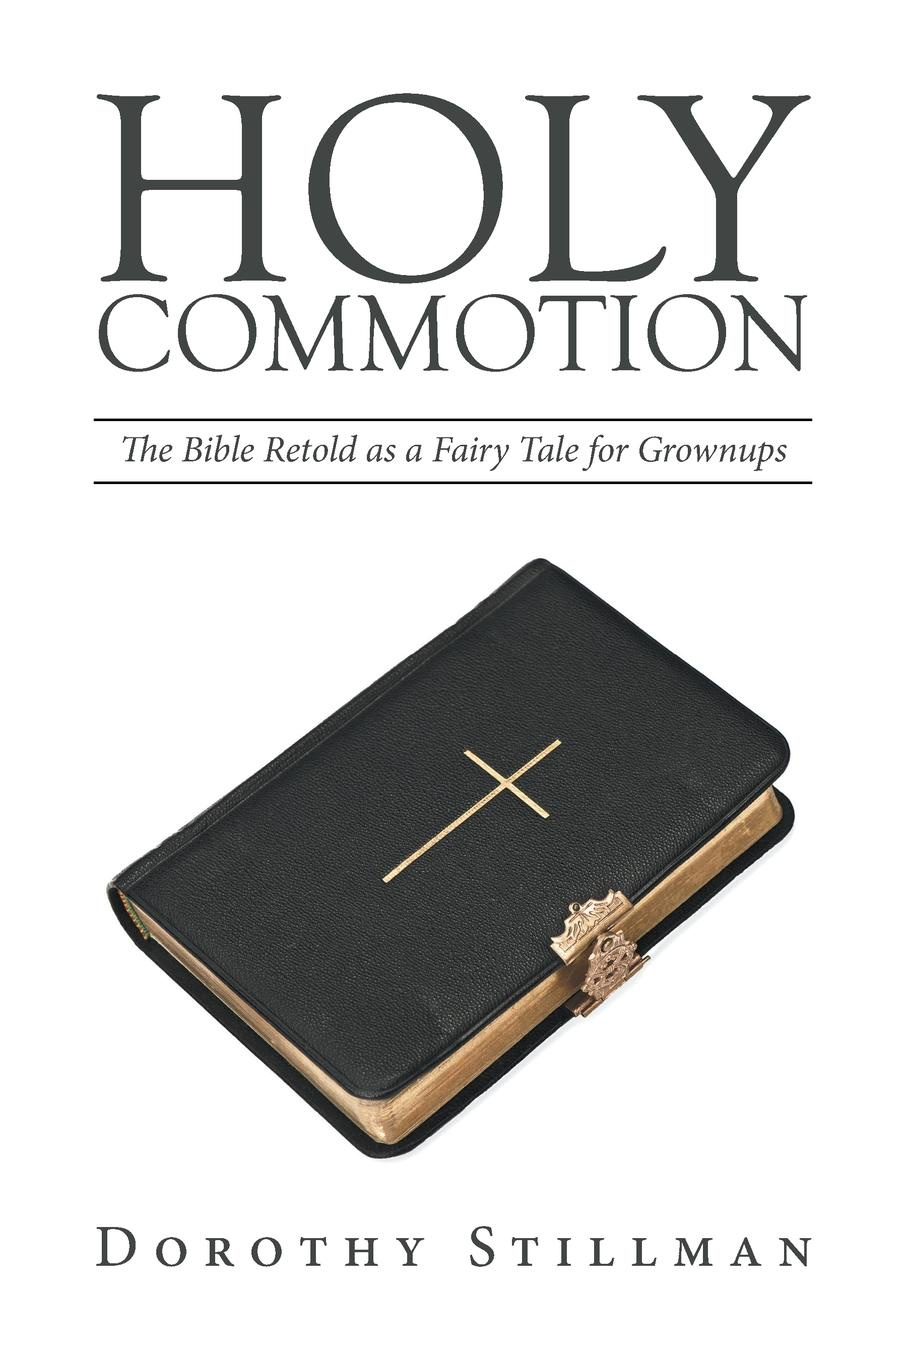 Dorothy Stillman HOLY COMMOTION. The Bible Retold as a Fairy Tale for Grownups the holy bible